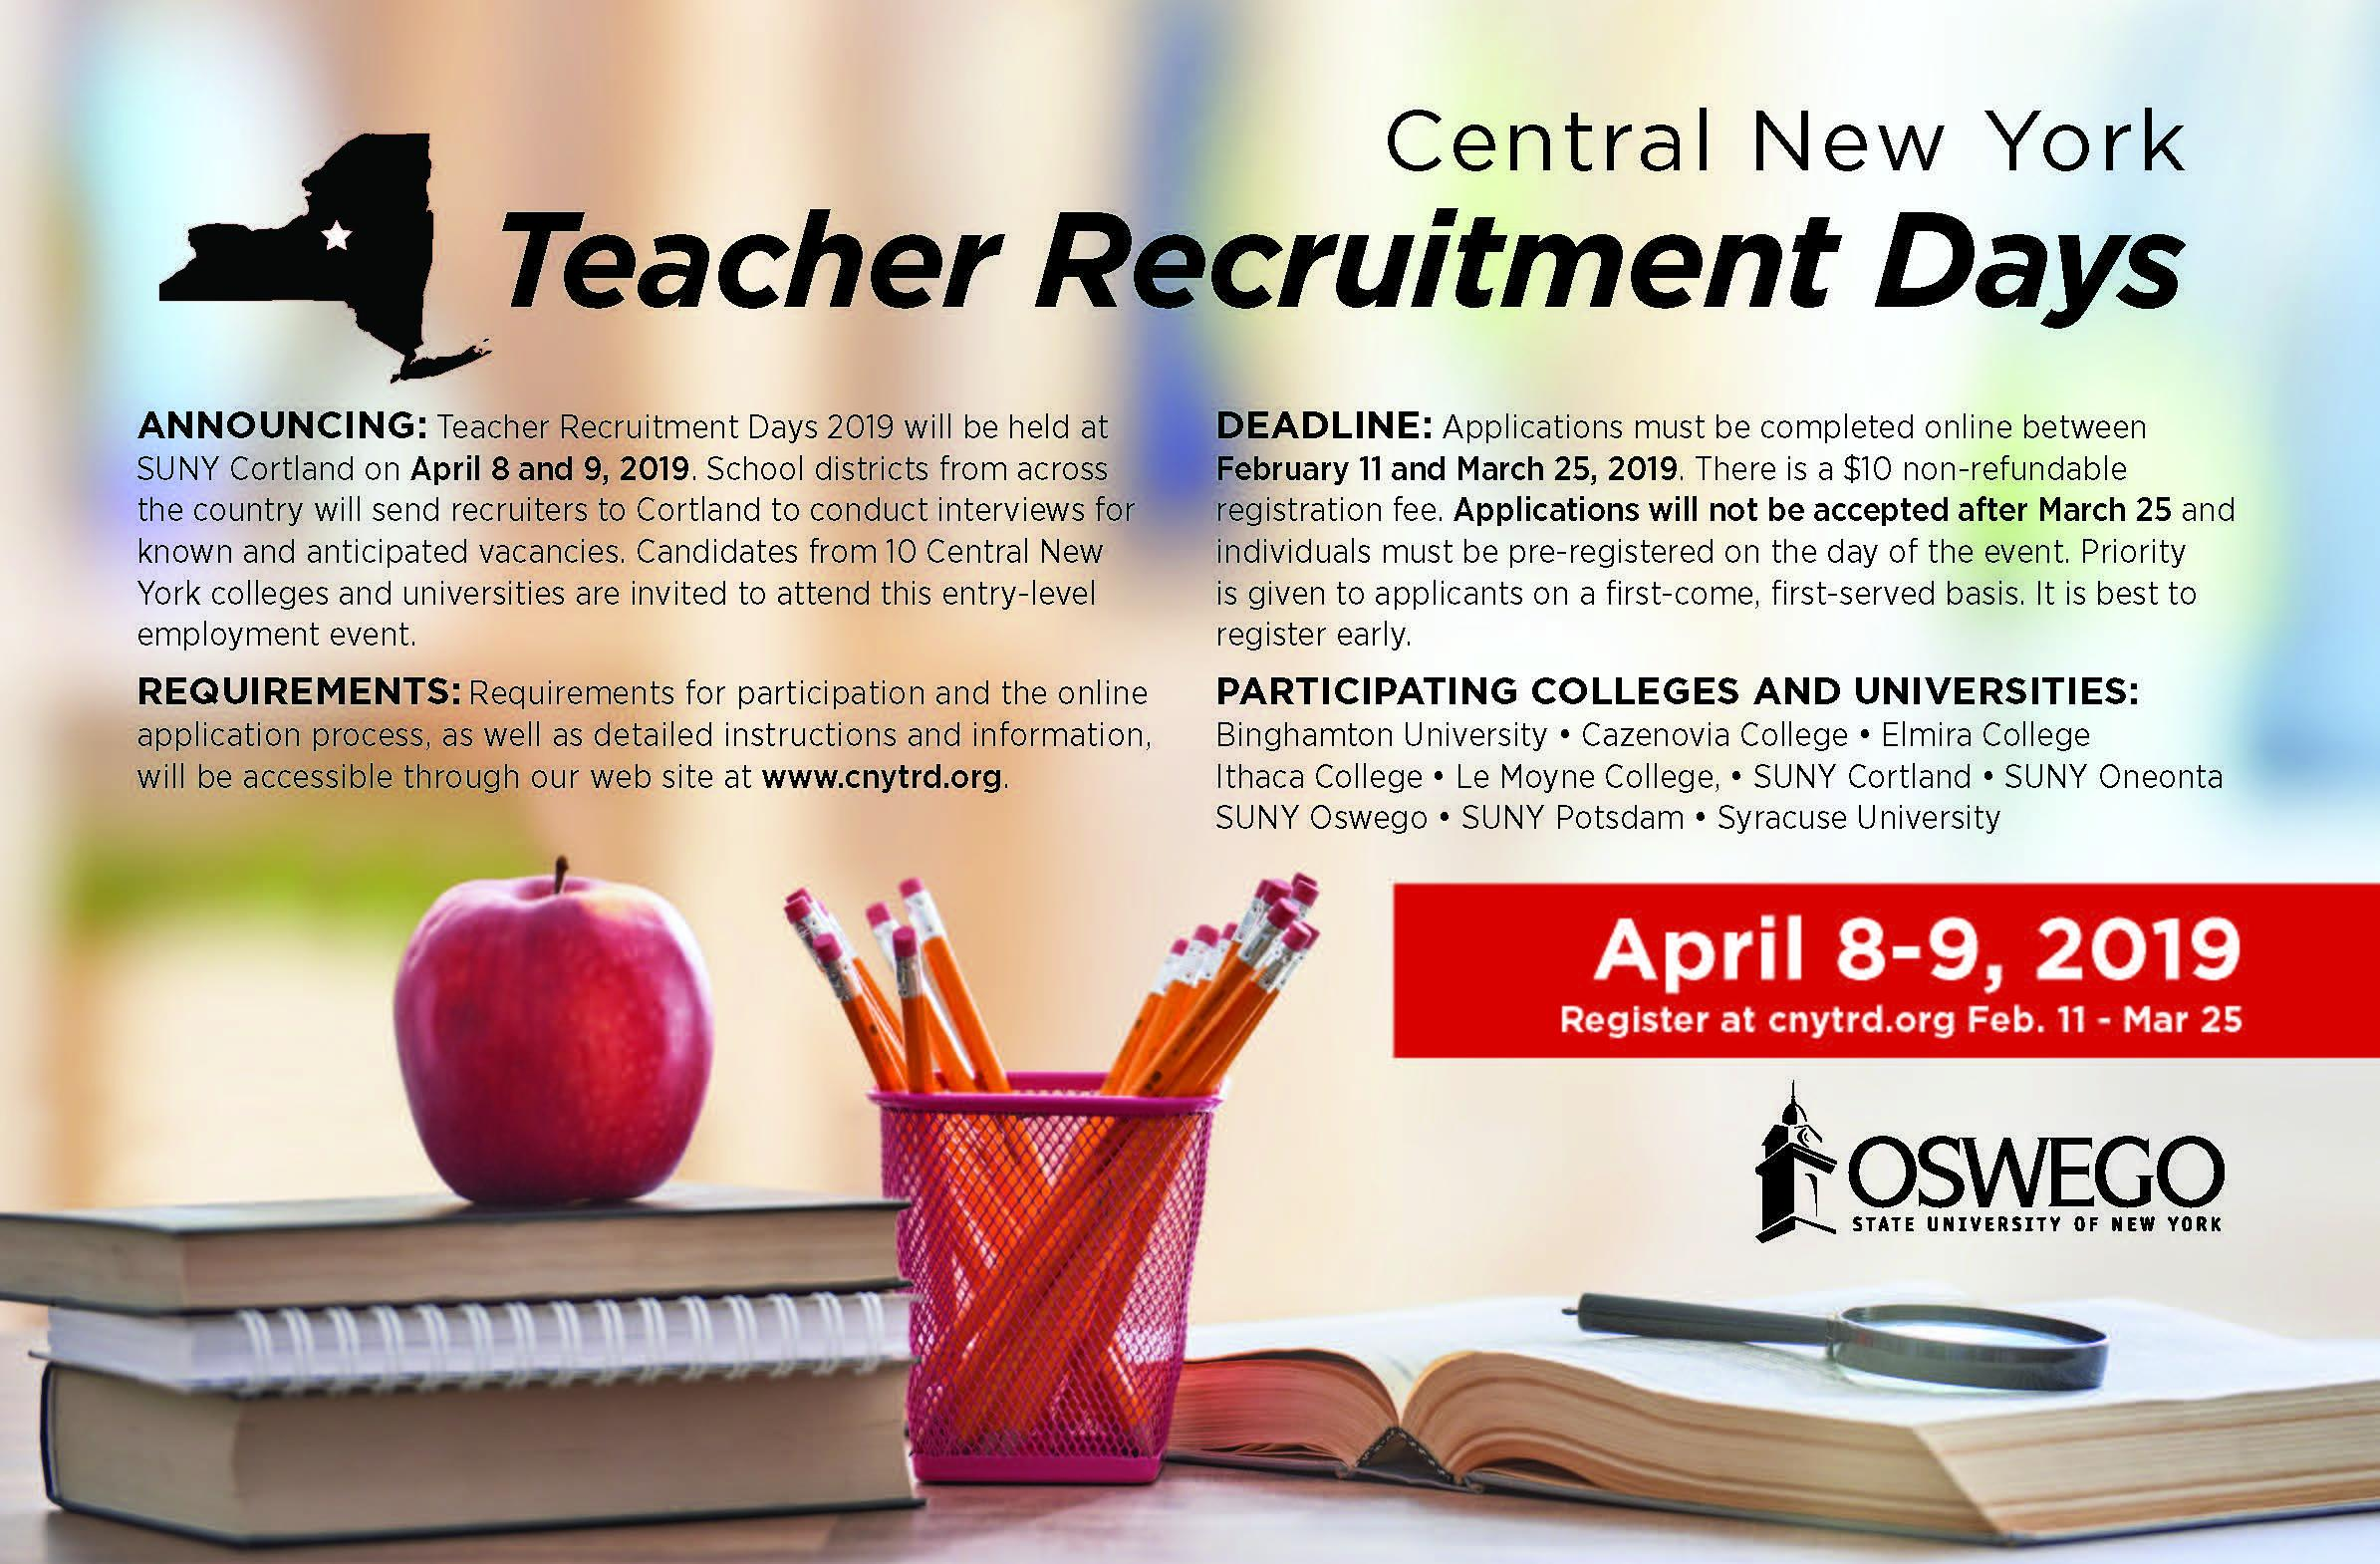 Teacher Recruitment Days Information